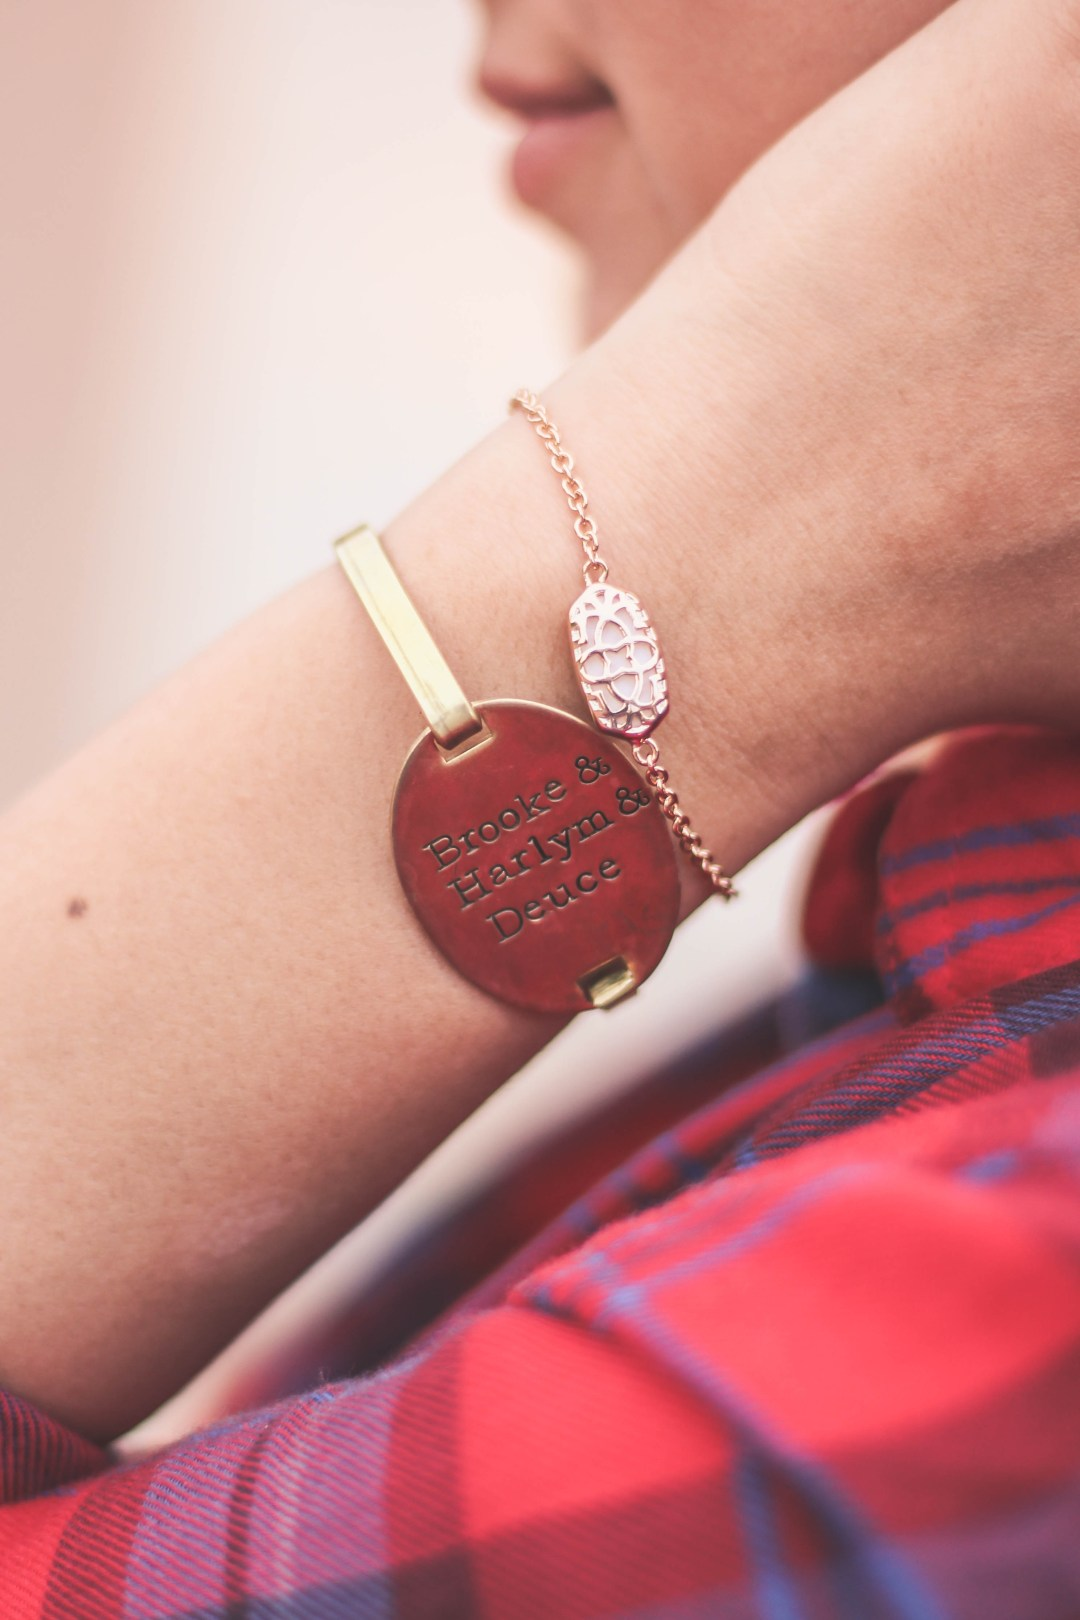 personalized jewelry for mom's